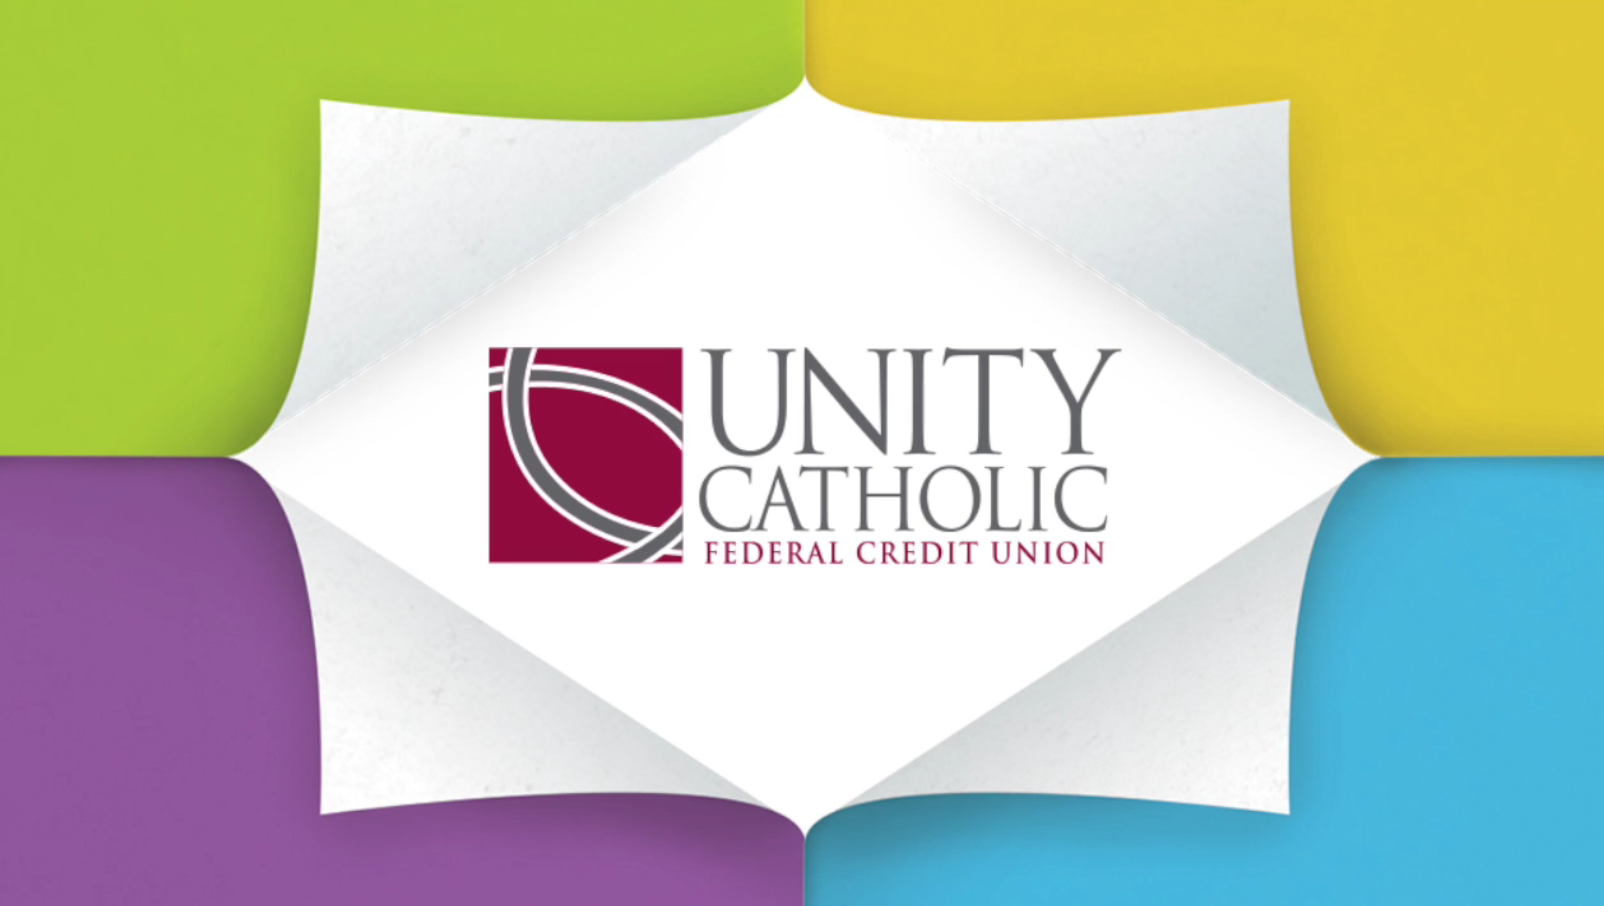 Unity Catholic Federal Credit Union